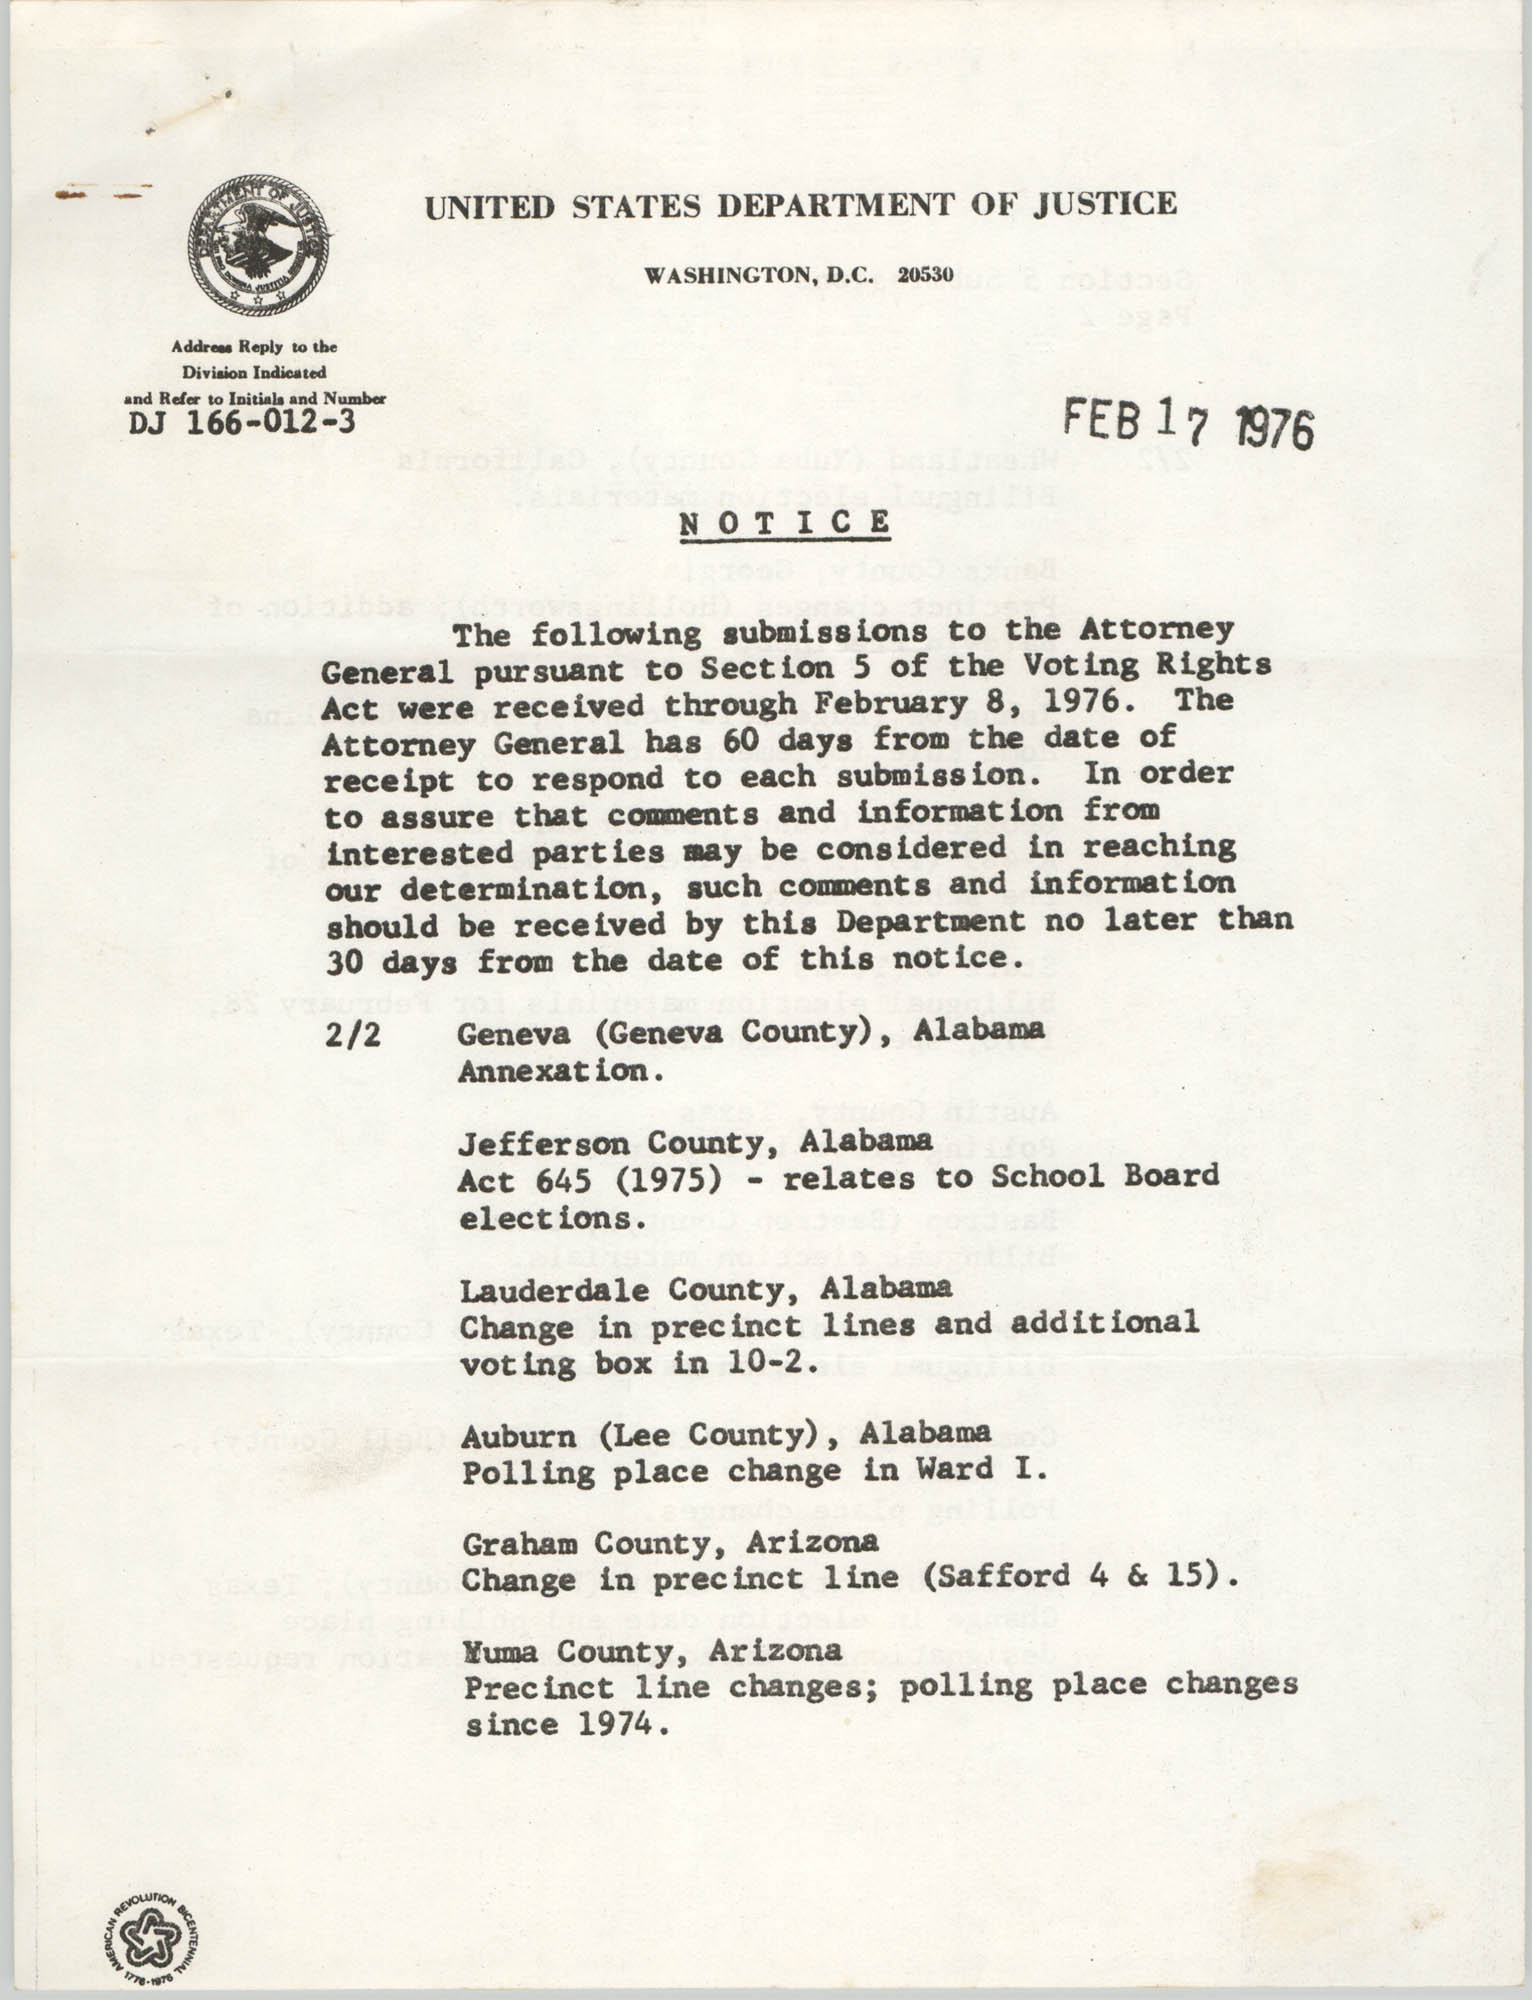 United States Department of Justice Notice, February 17, 1976, Page 1